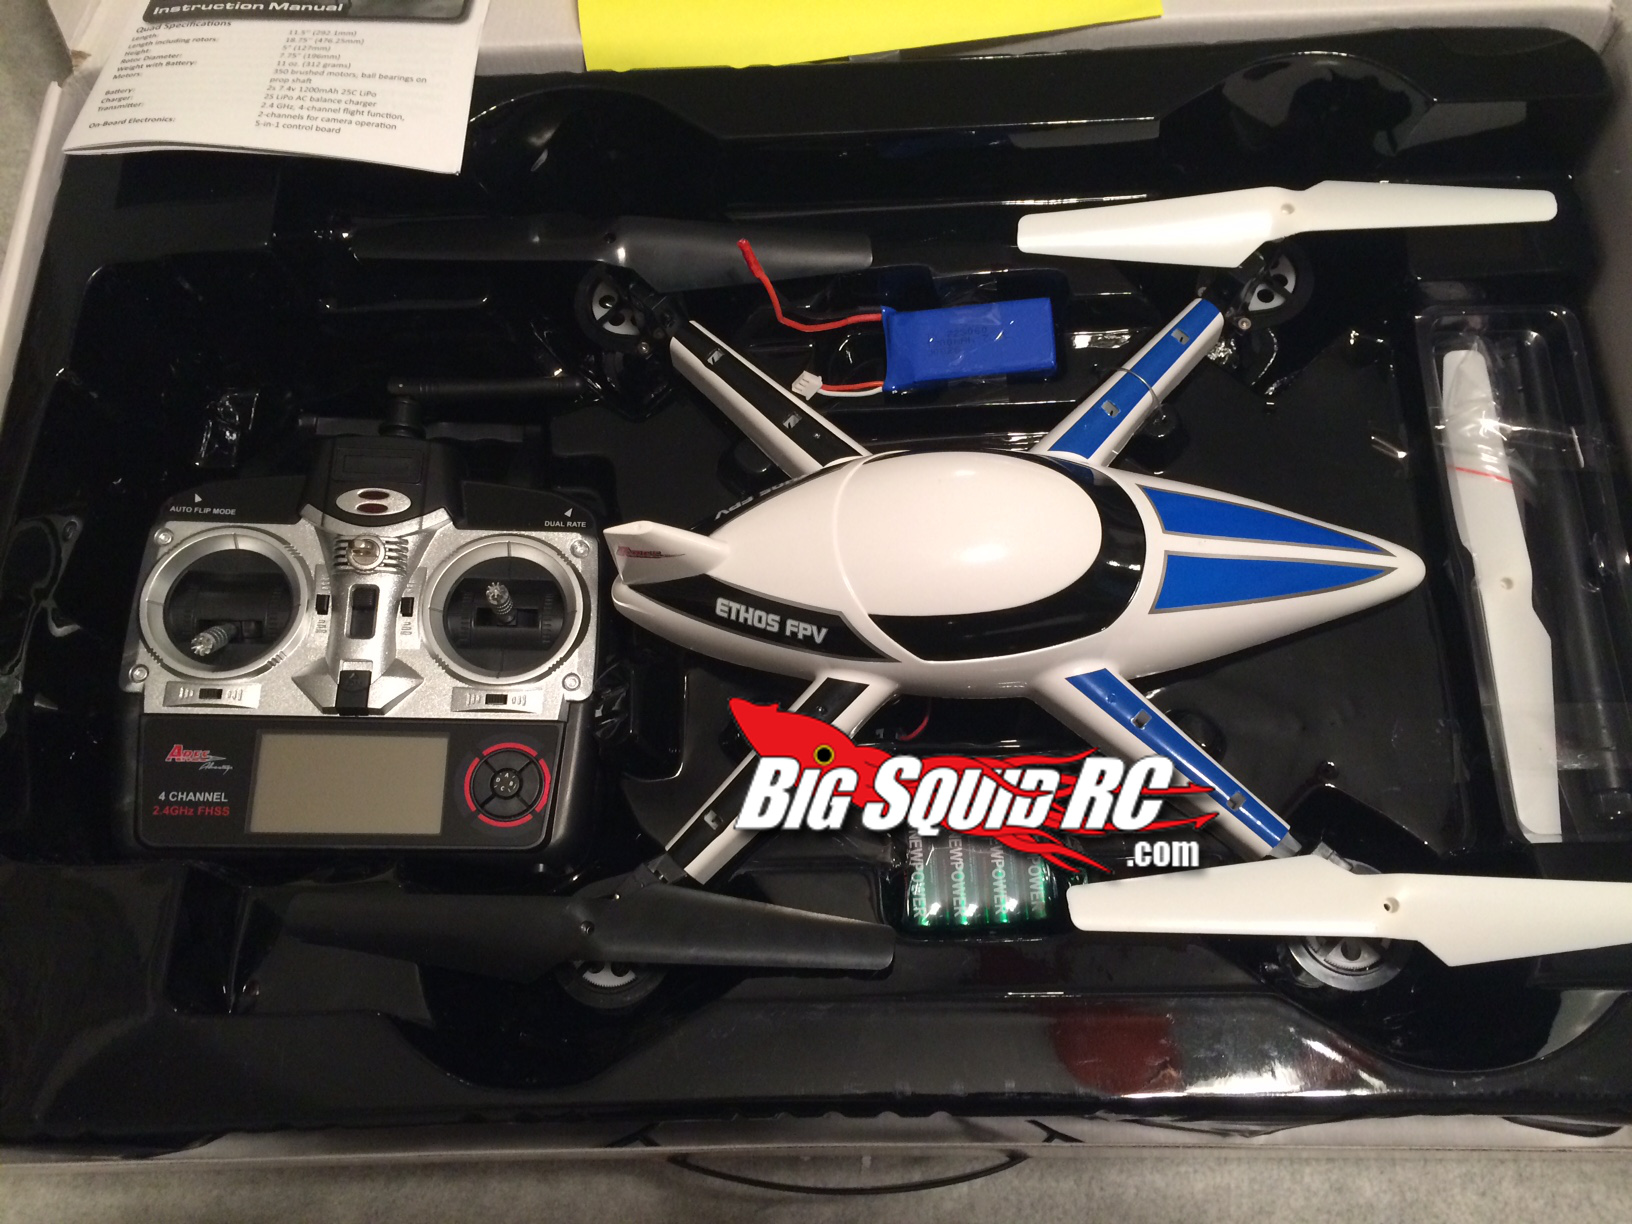 Ares Ethos Fpv 3 171 Big Squid Rc Rc Car And Truck News